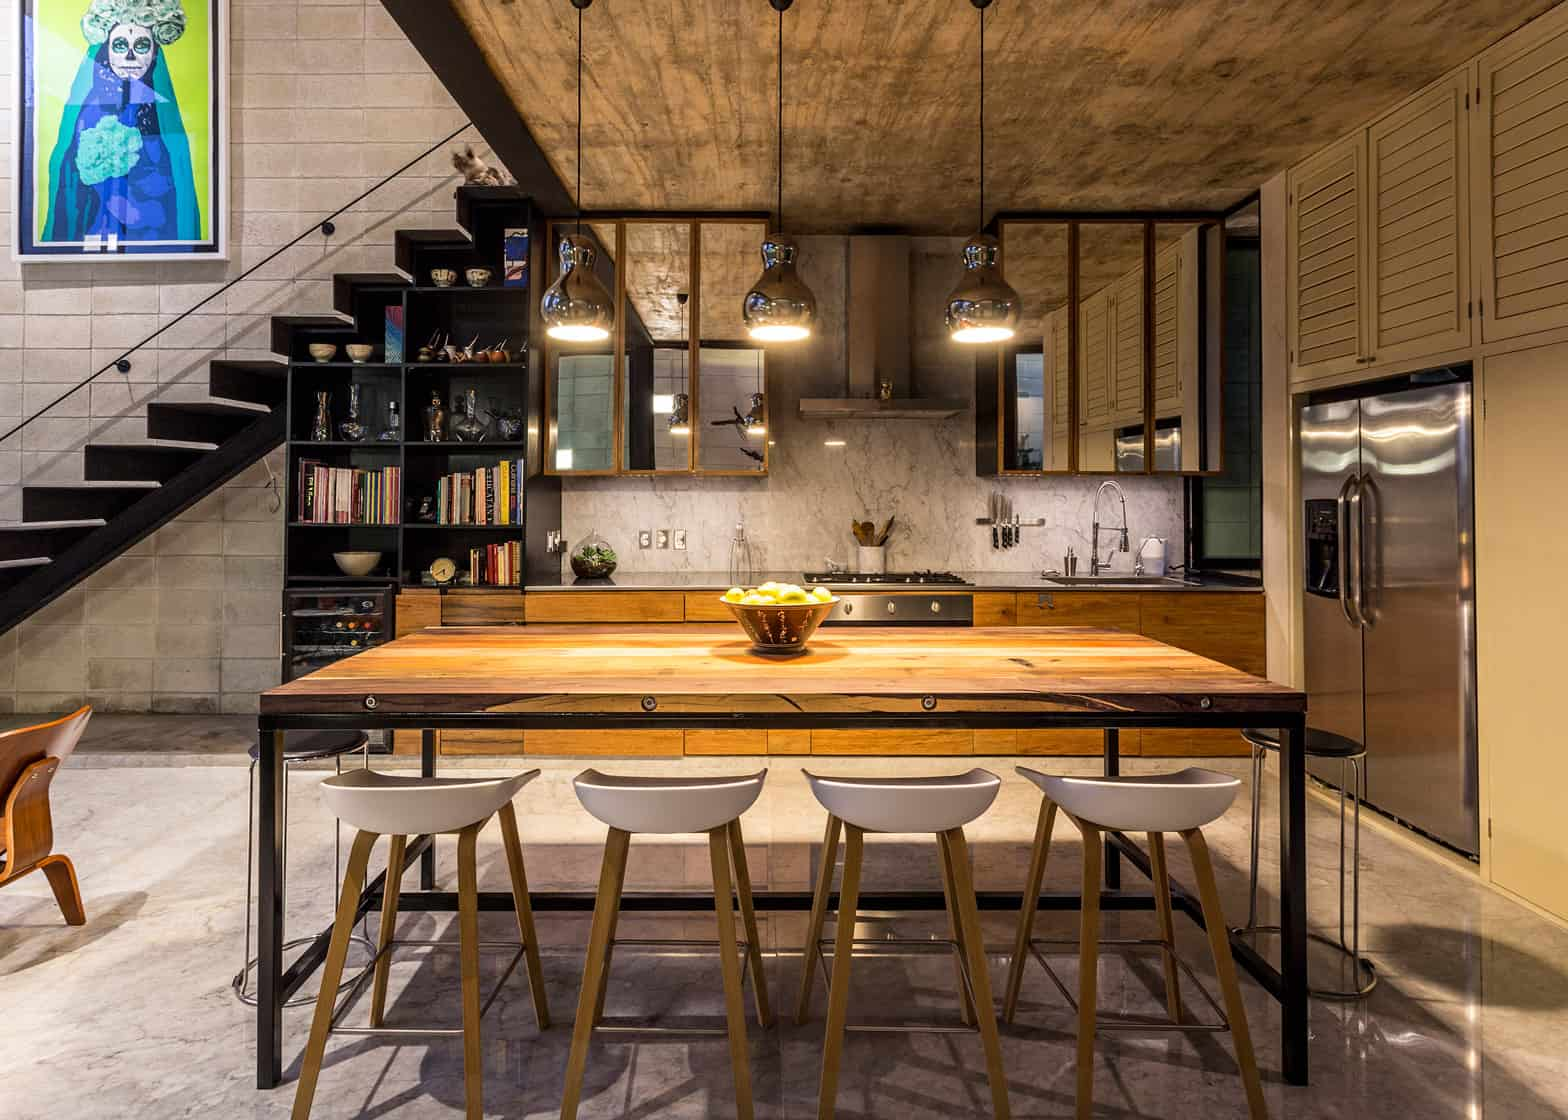 A Single Steel Stairwell On The Side Of Interior Morphs Into Two Rows Kitchen Cabinetry Which Along With Dining And Living Areas Take Up